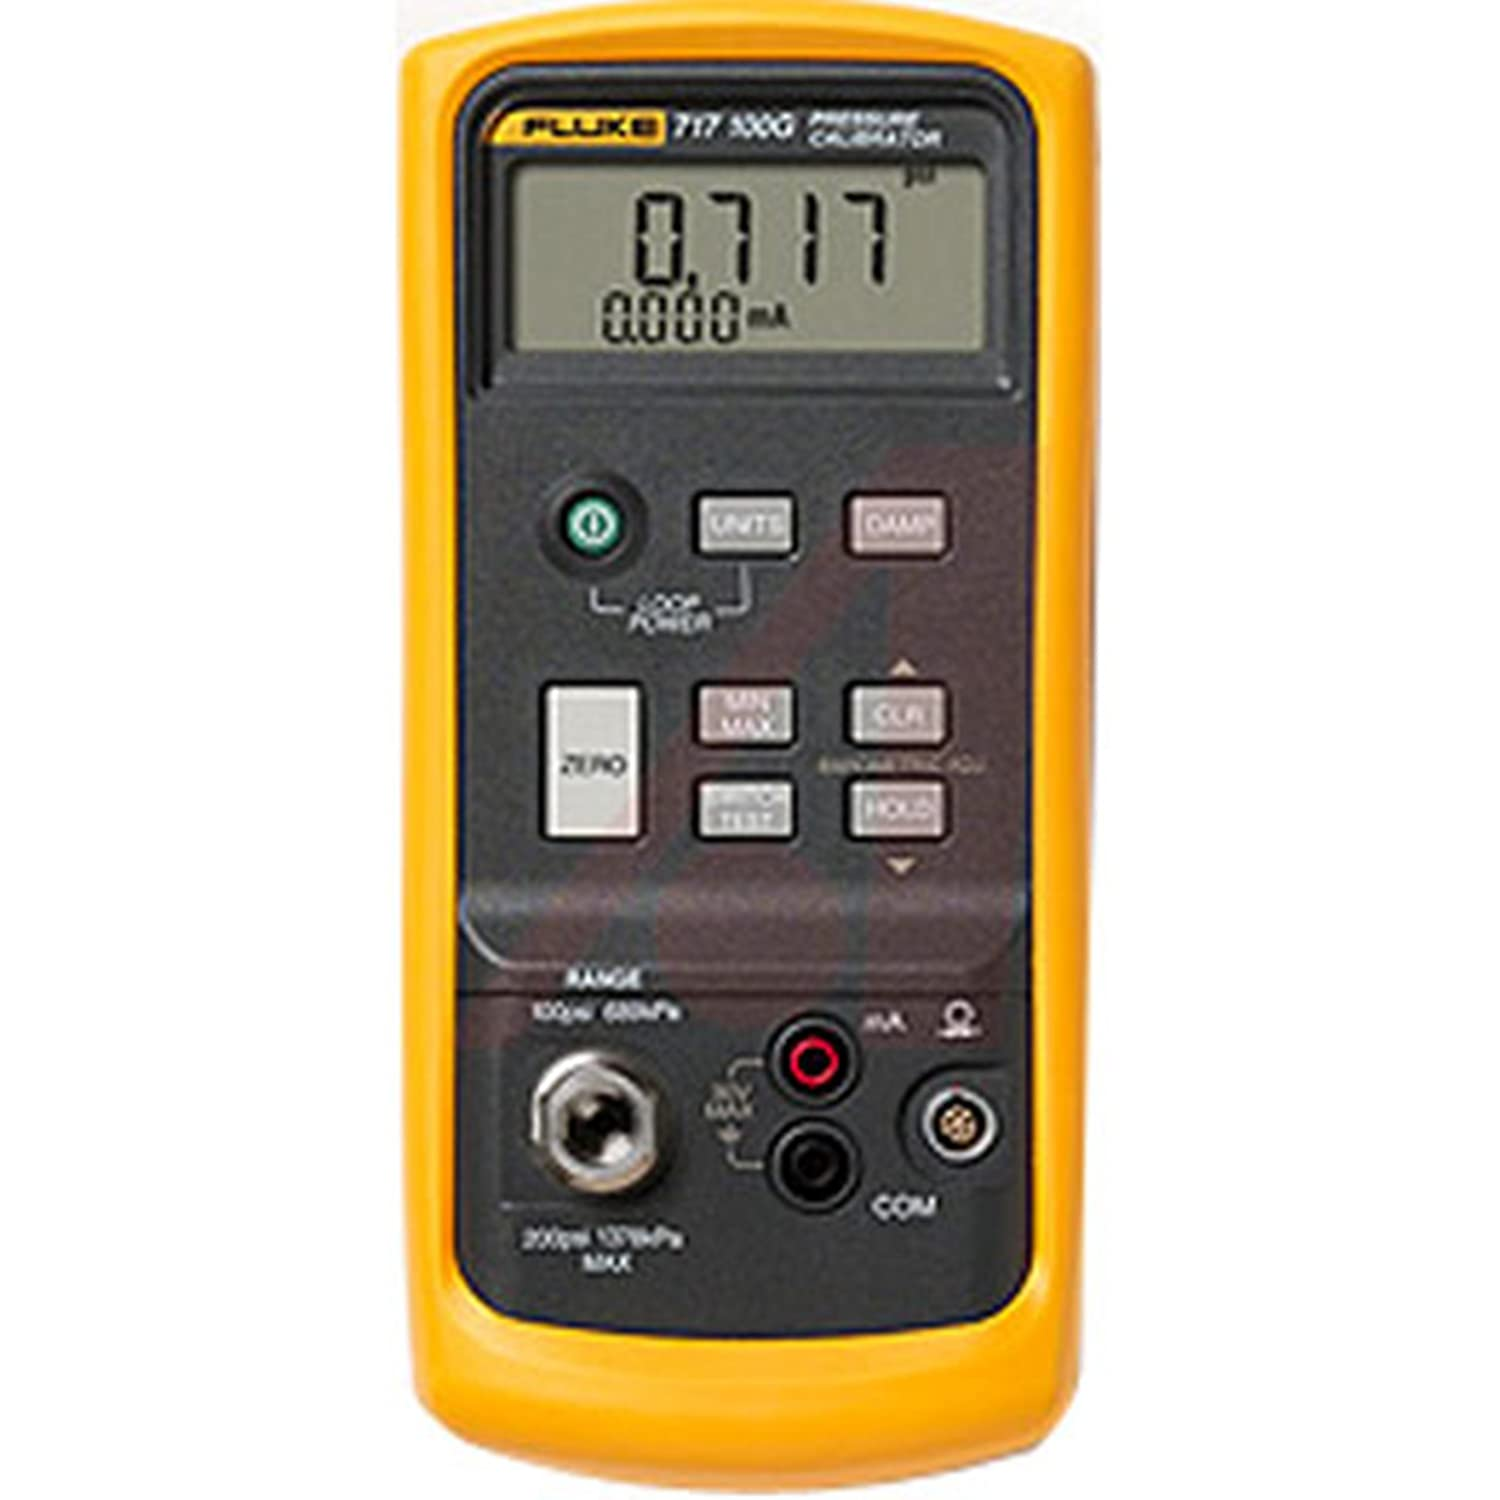 Fluke 717 30 G Calibrador De Presión 2 Bar Amazon Es